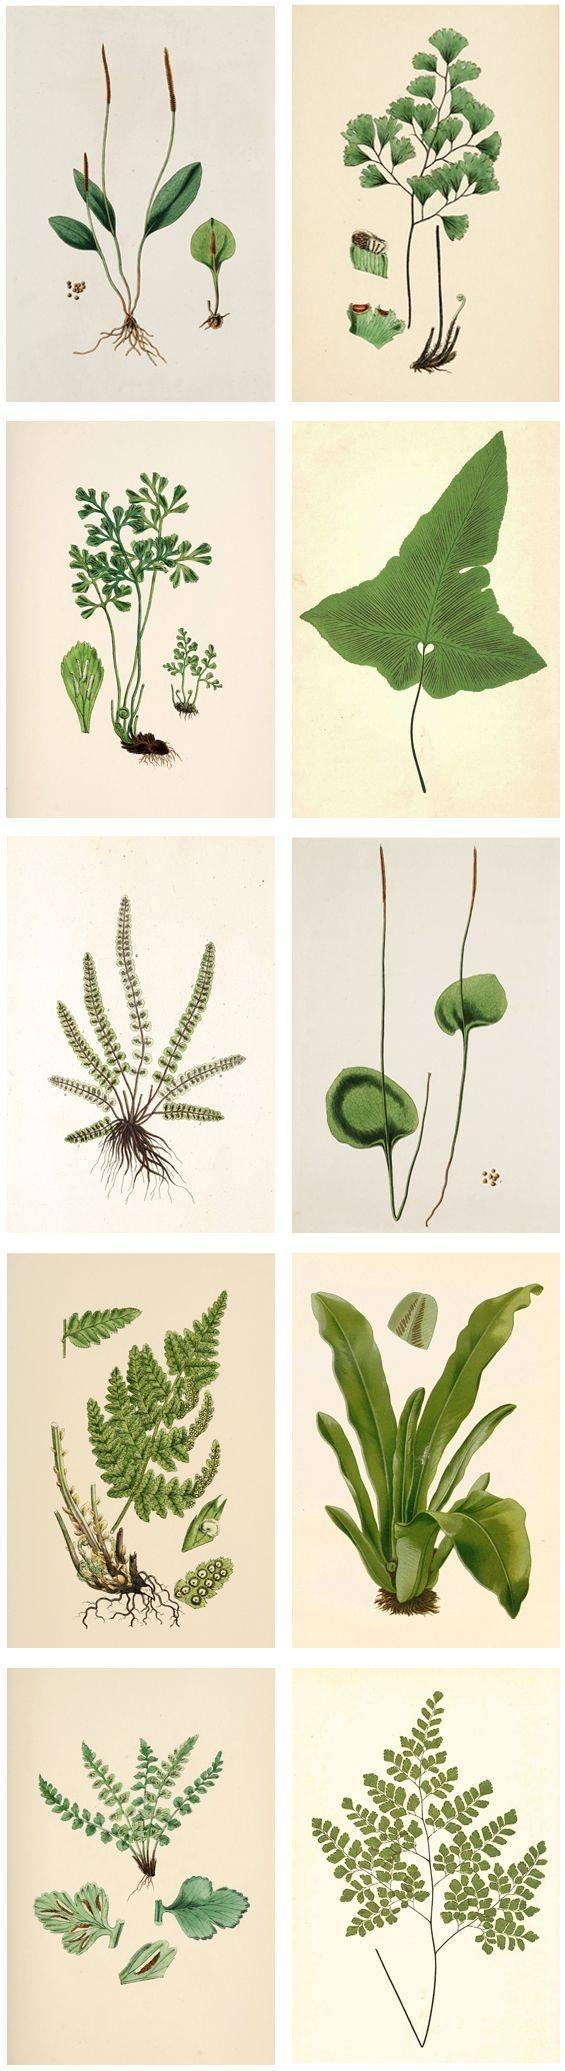 25+ Unique Plant Art Ideas On Pinterest | Mirror Art, Printable Pertaining To Recent Floral & Plant Wall Art (View 4 of 25)